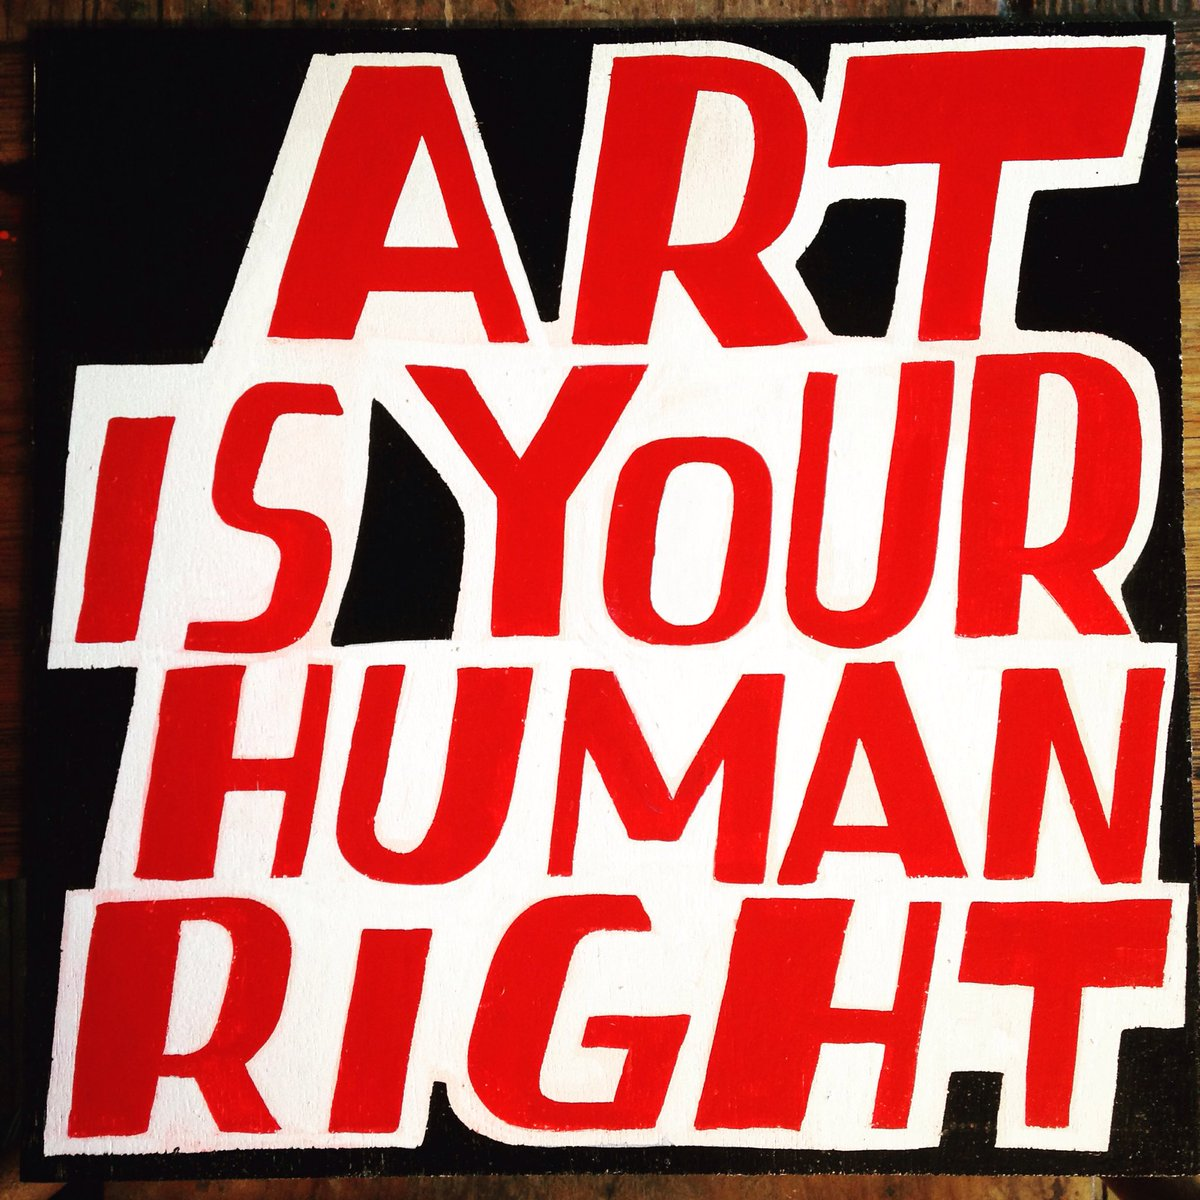 test Twitter Media - RT @BobandRoberta: Art is your human right https://t.co/GURhuJunTV